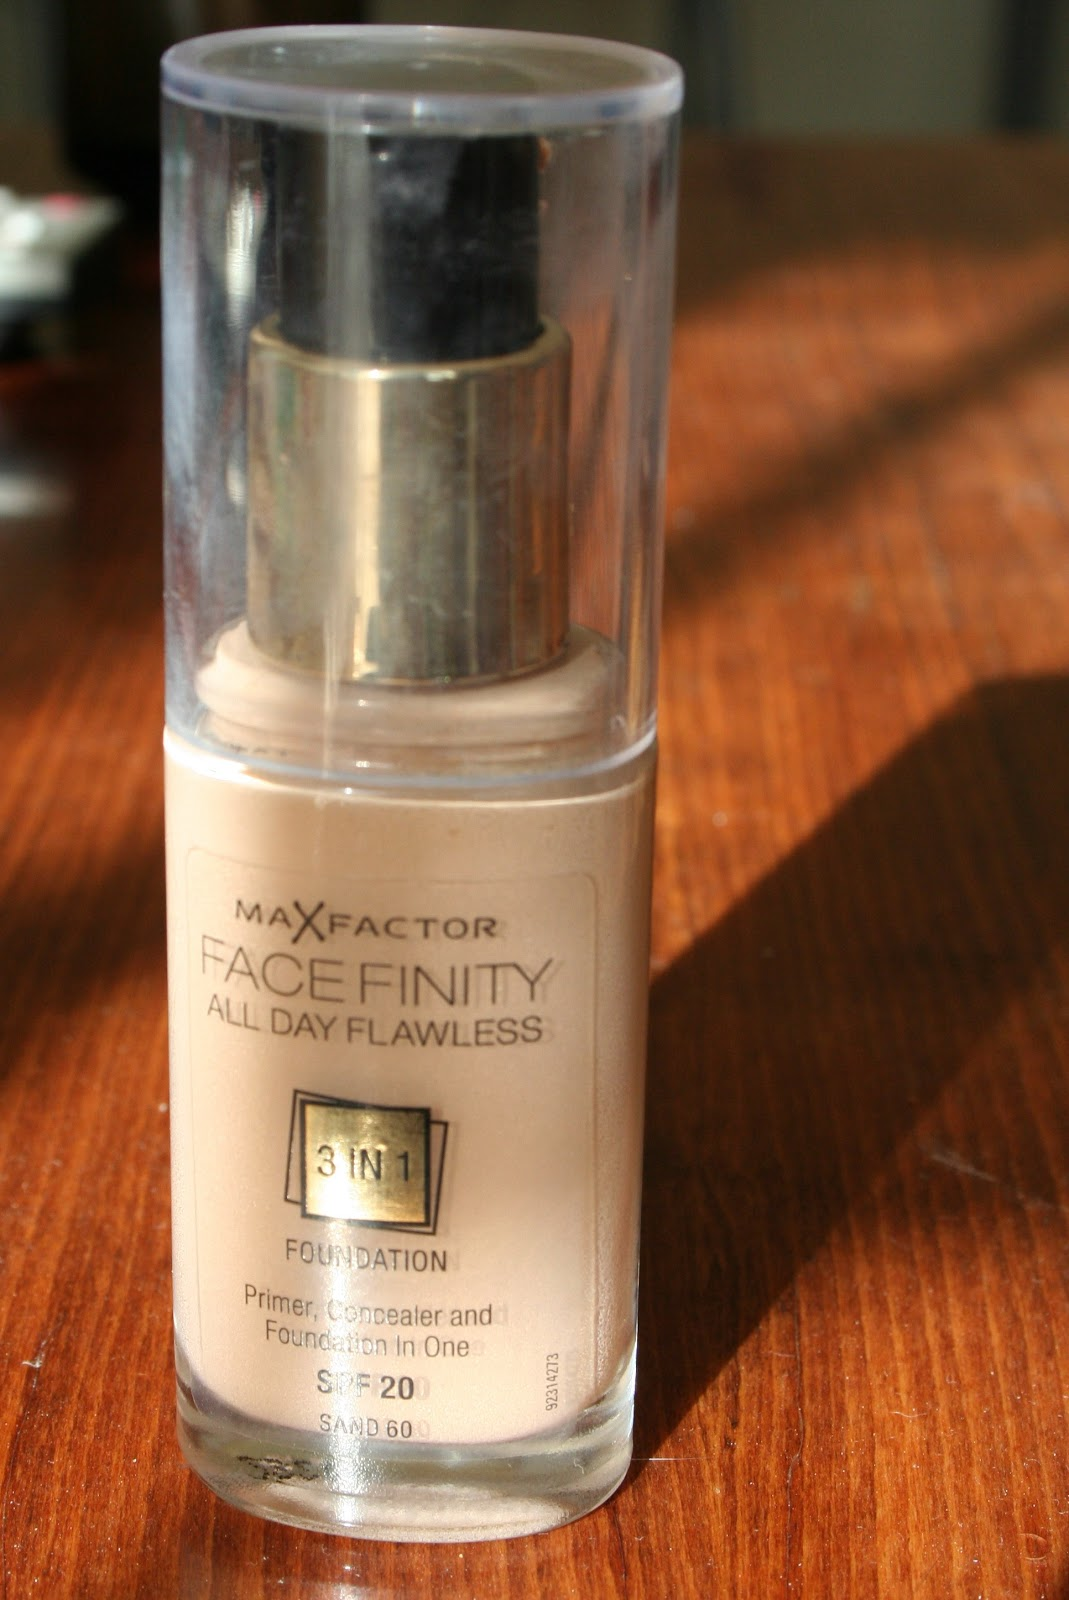 Max factor primer concealer foundation